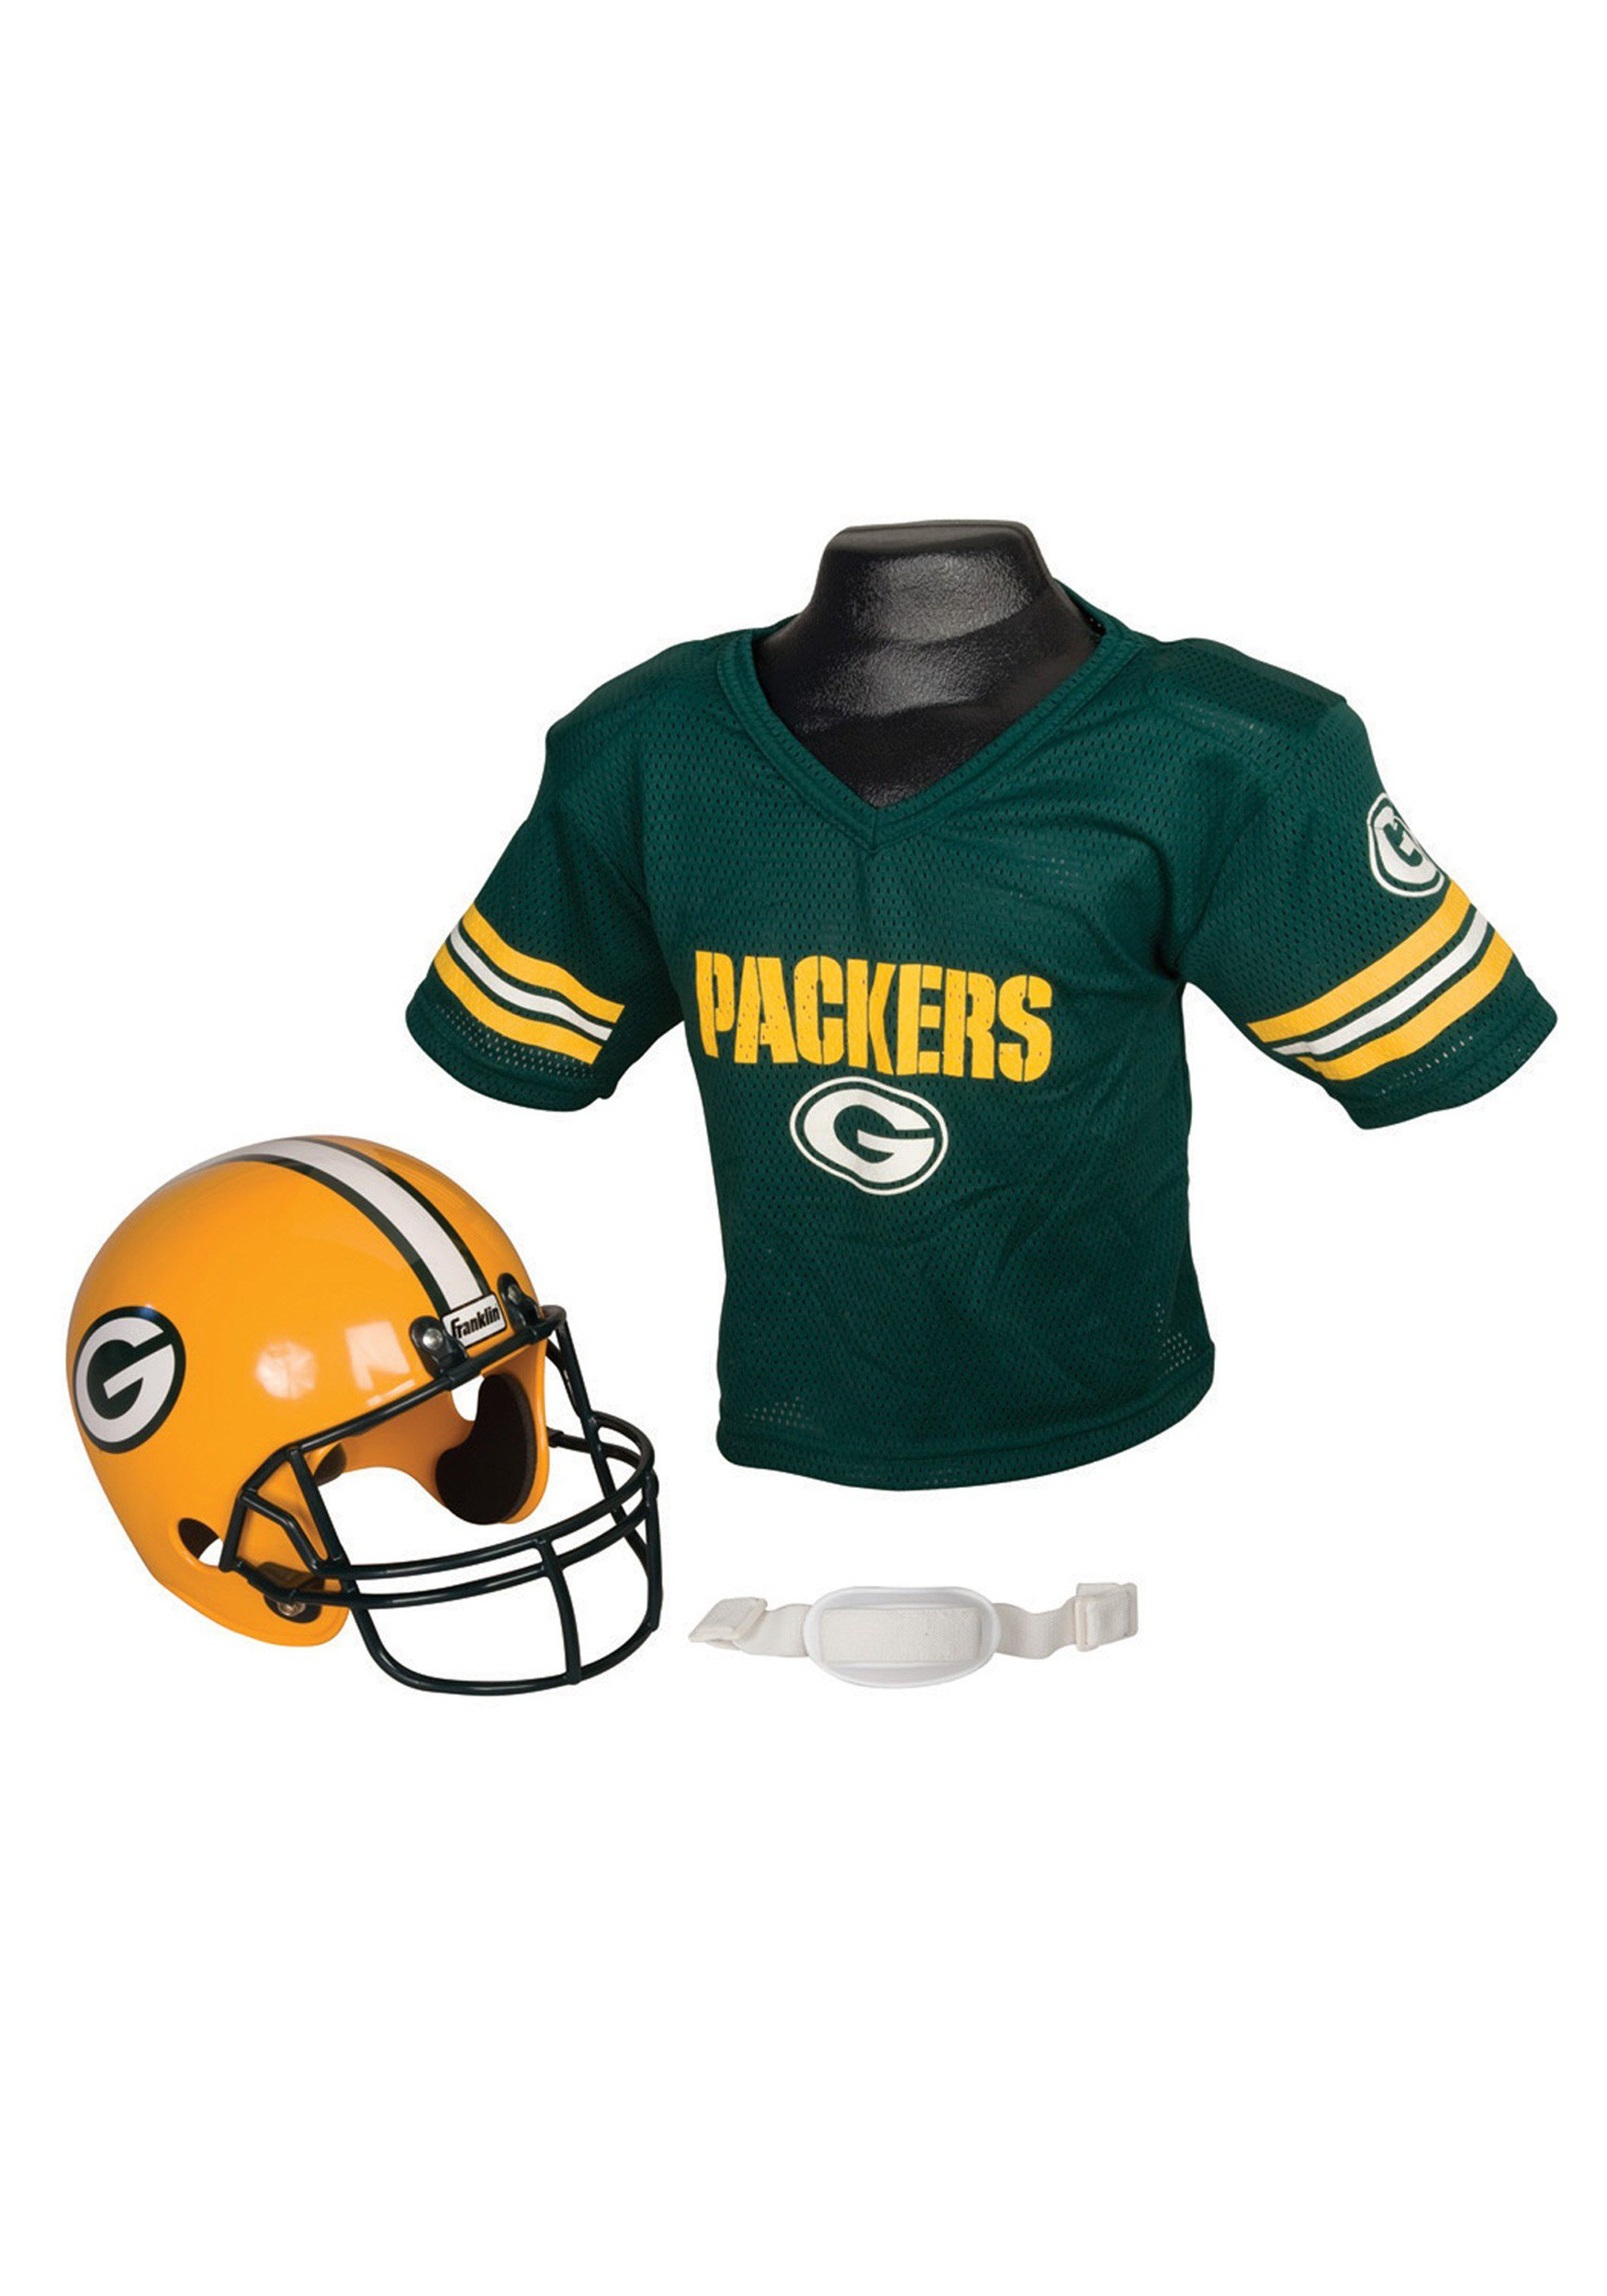 on sale a610e 35b4a Child NFL Green Bay Packers Helmet and Jersey Costume Set